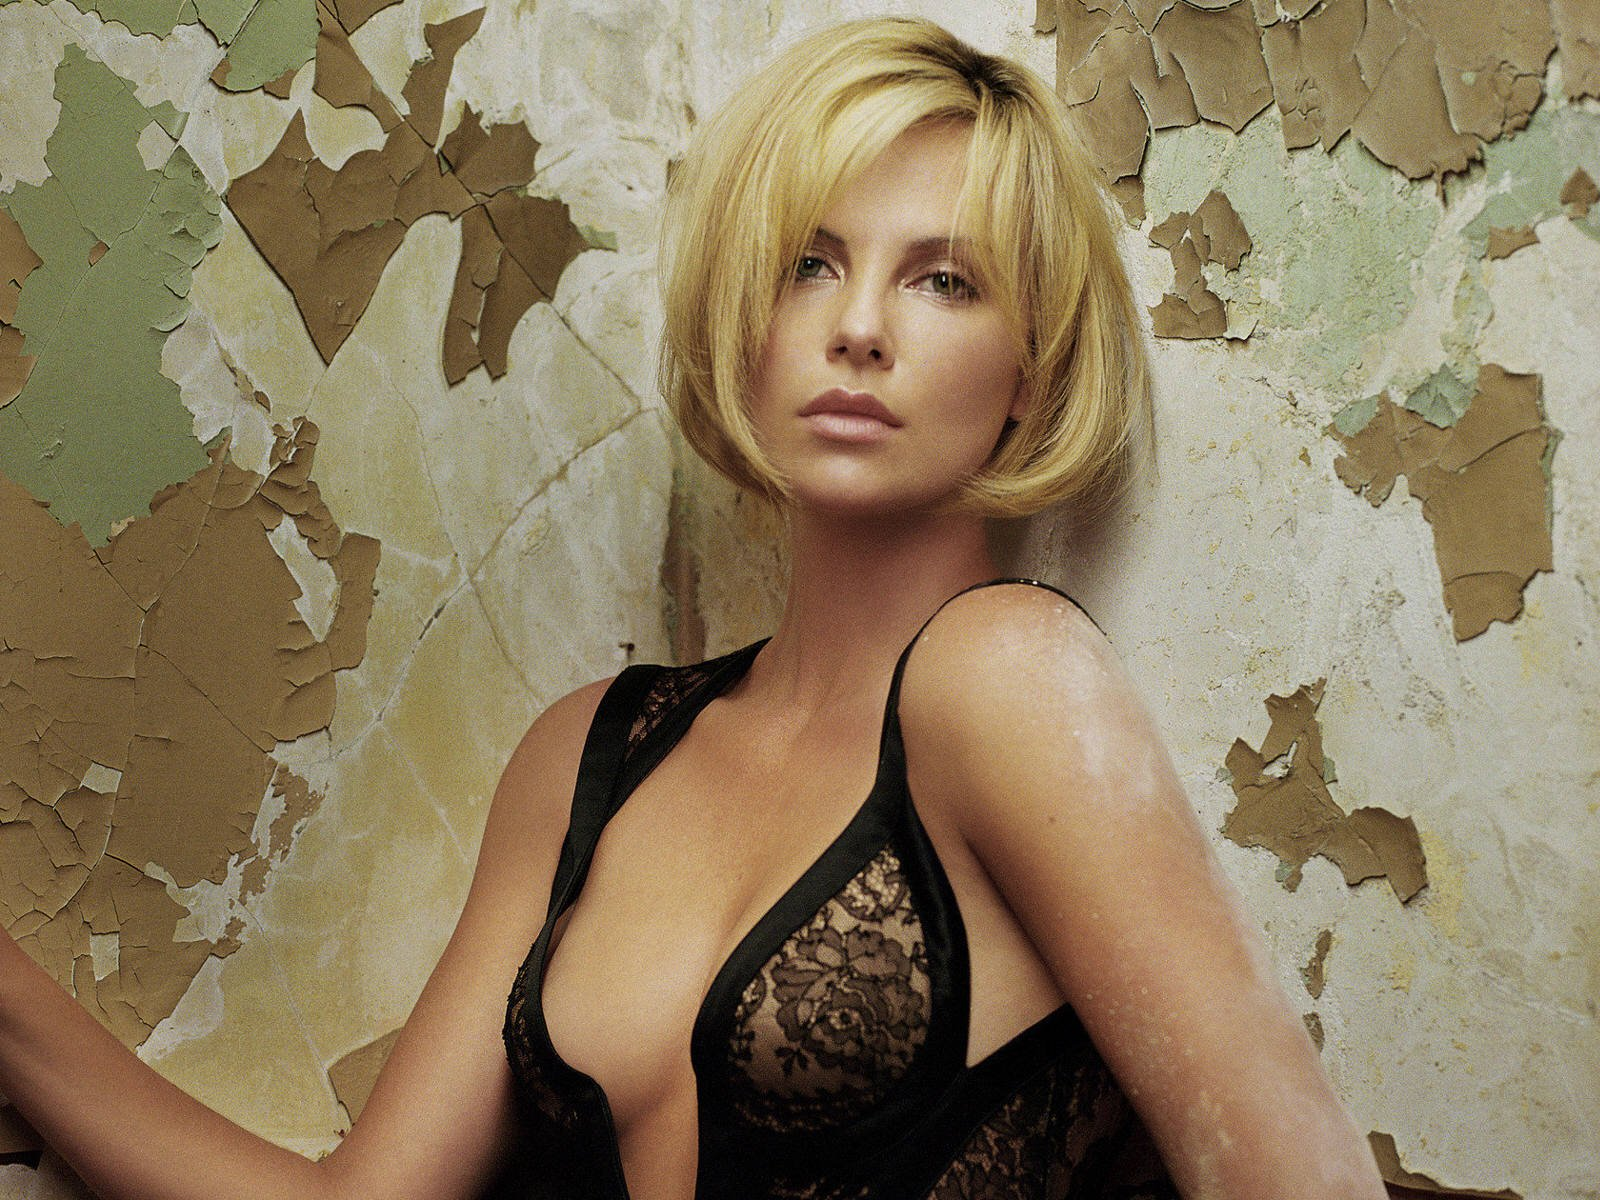 modeling photo of charlize theron in a sexy black see through lingerie top with a blonde bob